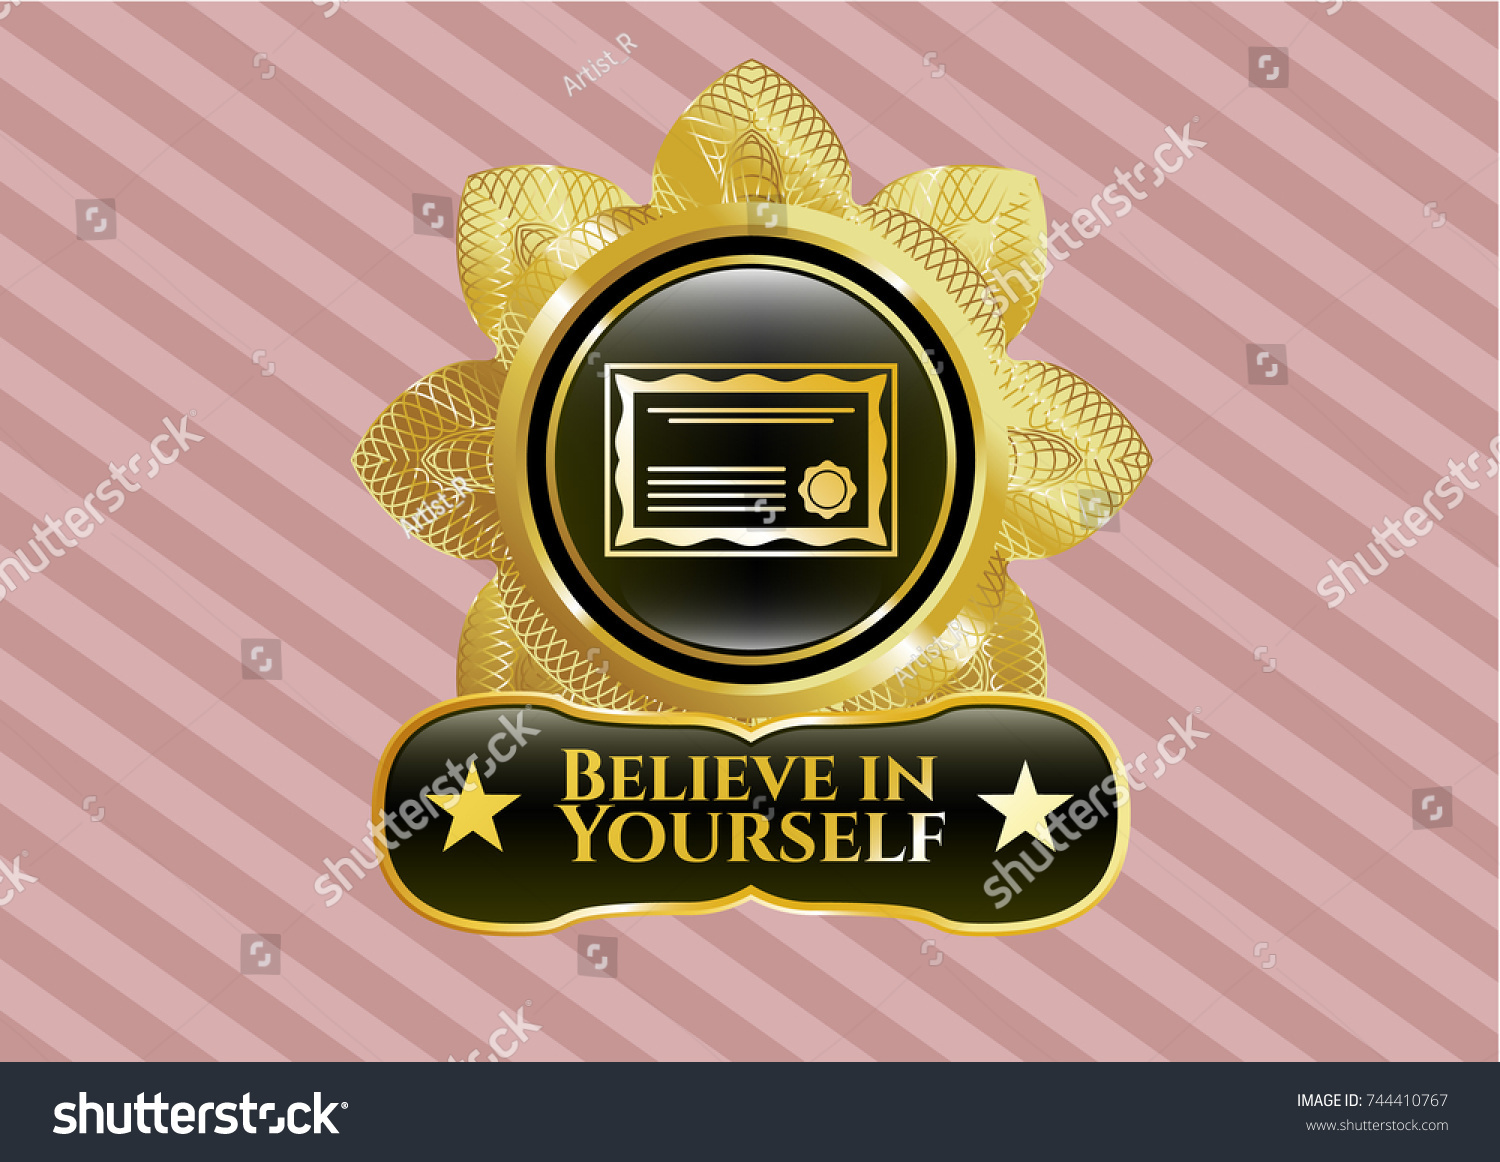 Gold shiny badge certificate icon believe stock vector 744410767 gold shiny badge with certificate icon and believe in yourself text inside biocorpaavc Choice Image